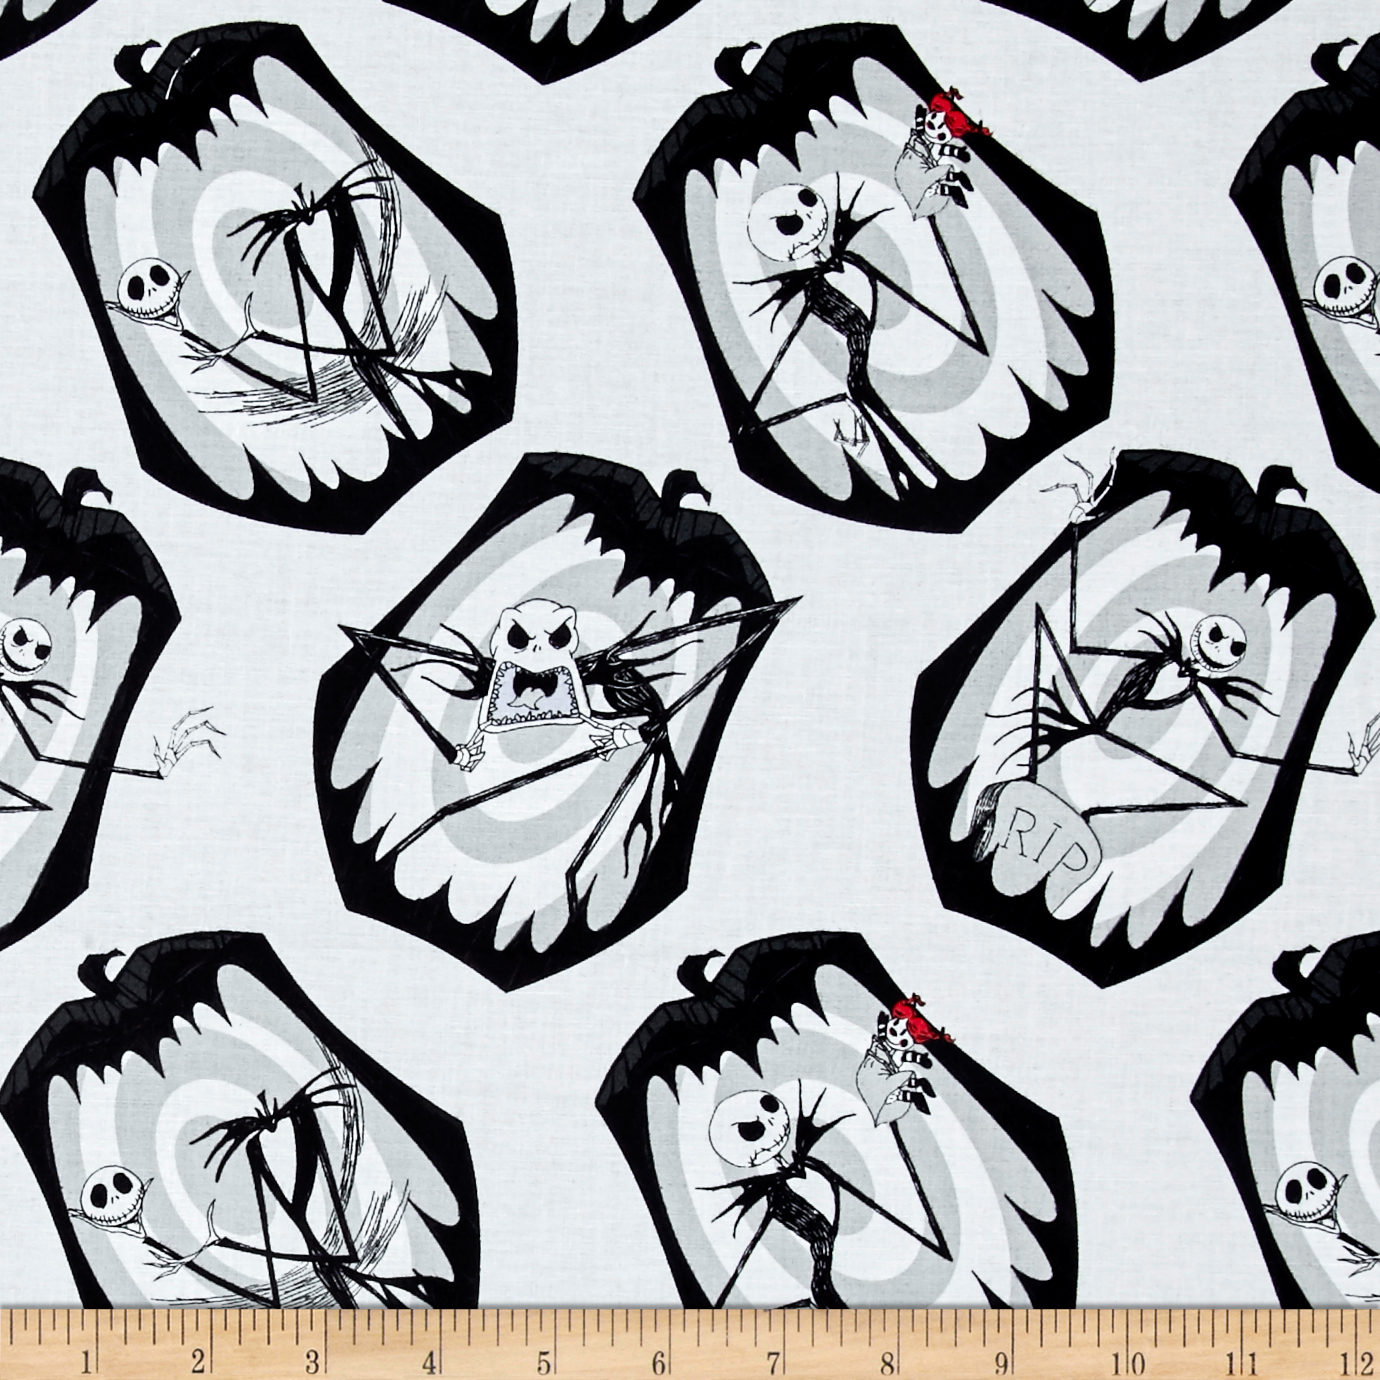 The Nightmare Before Christmas The Pumpkin King Stone Fabric by Eugene in USA